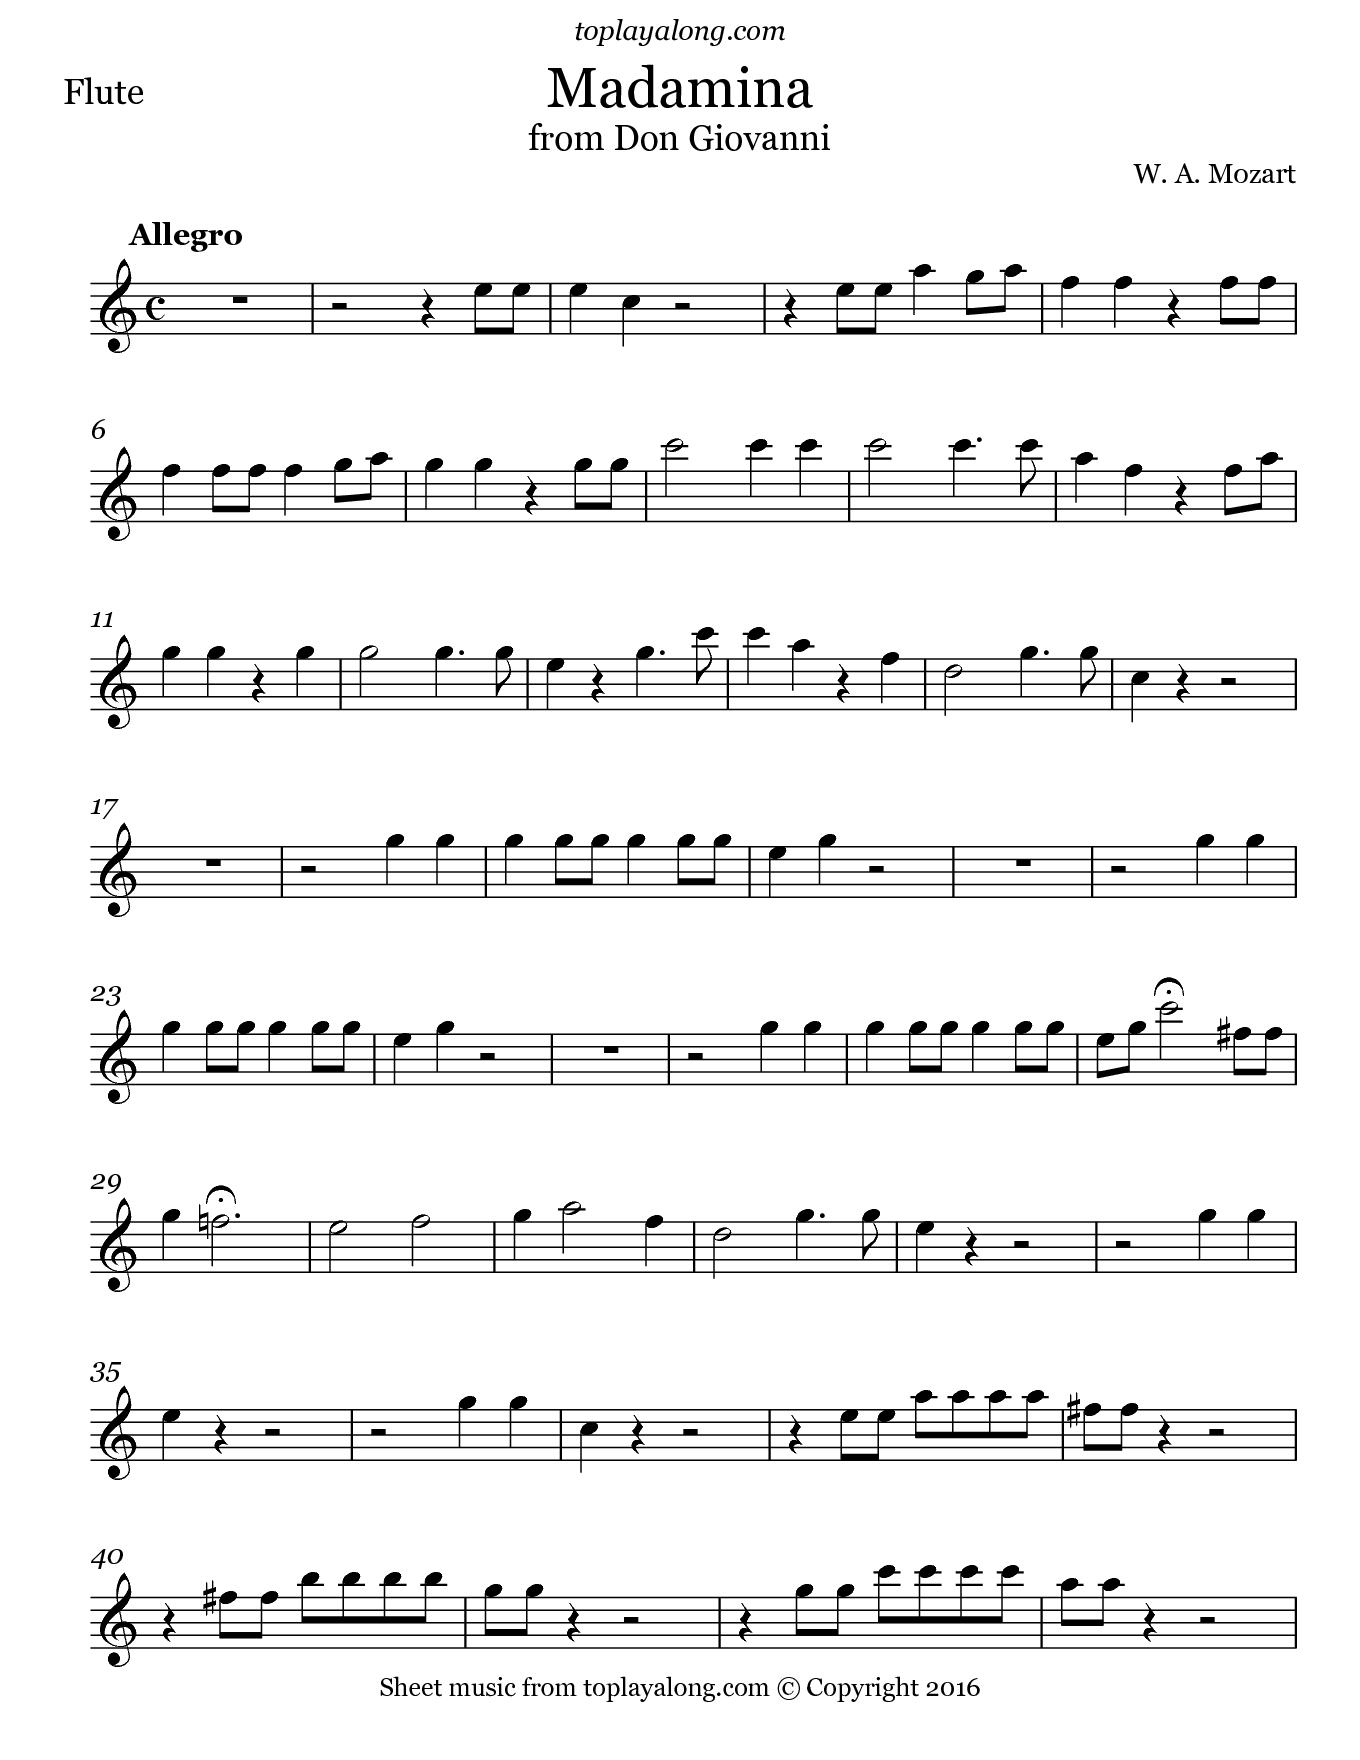 Madamina from Don Giovanni by Mozart. Sheet music for Flute, page 1.